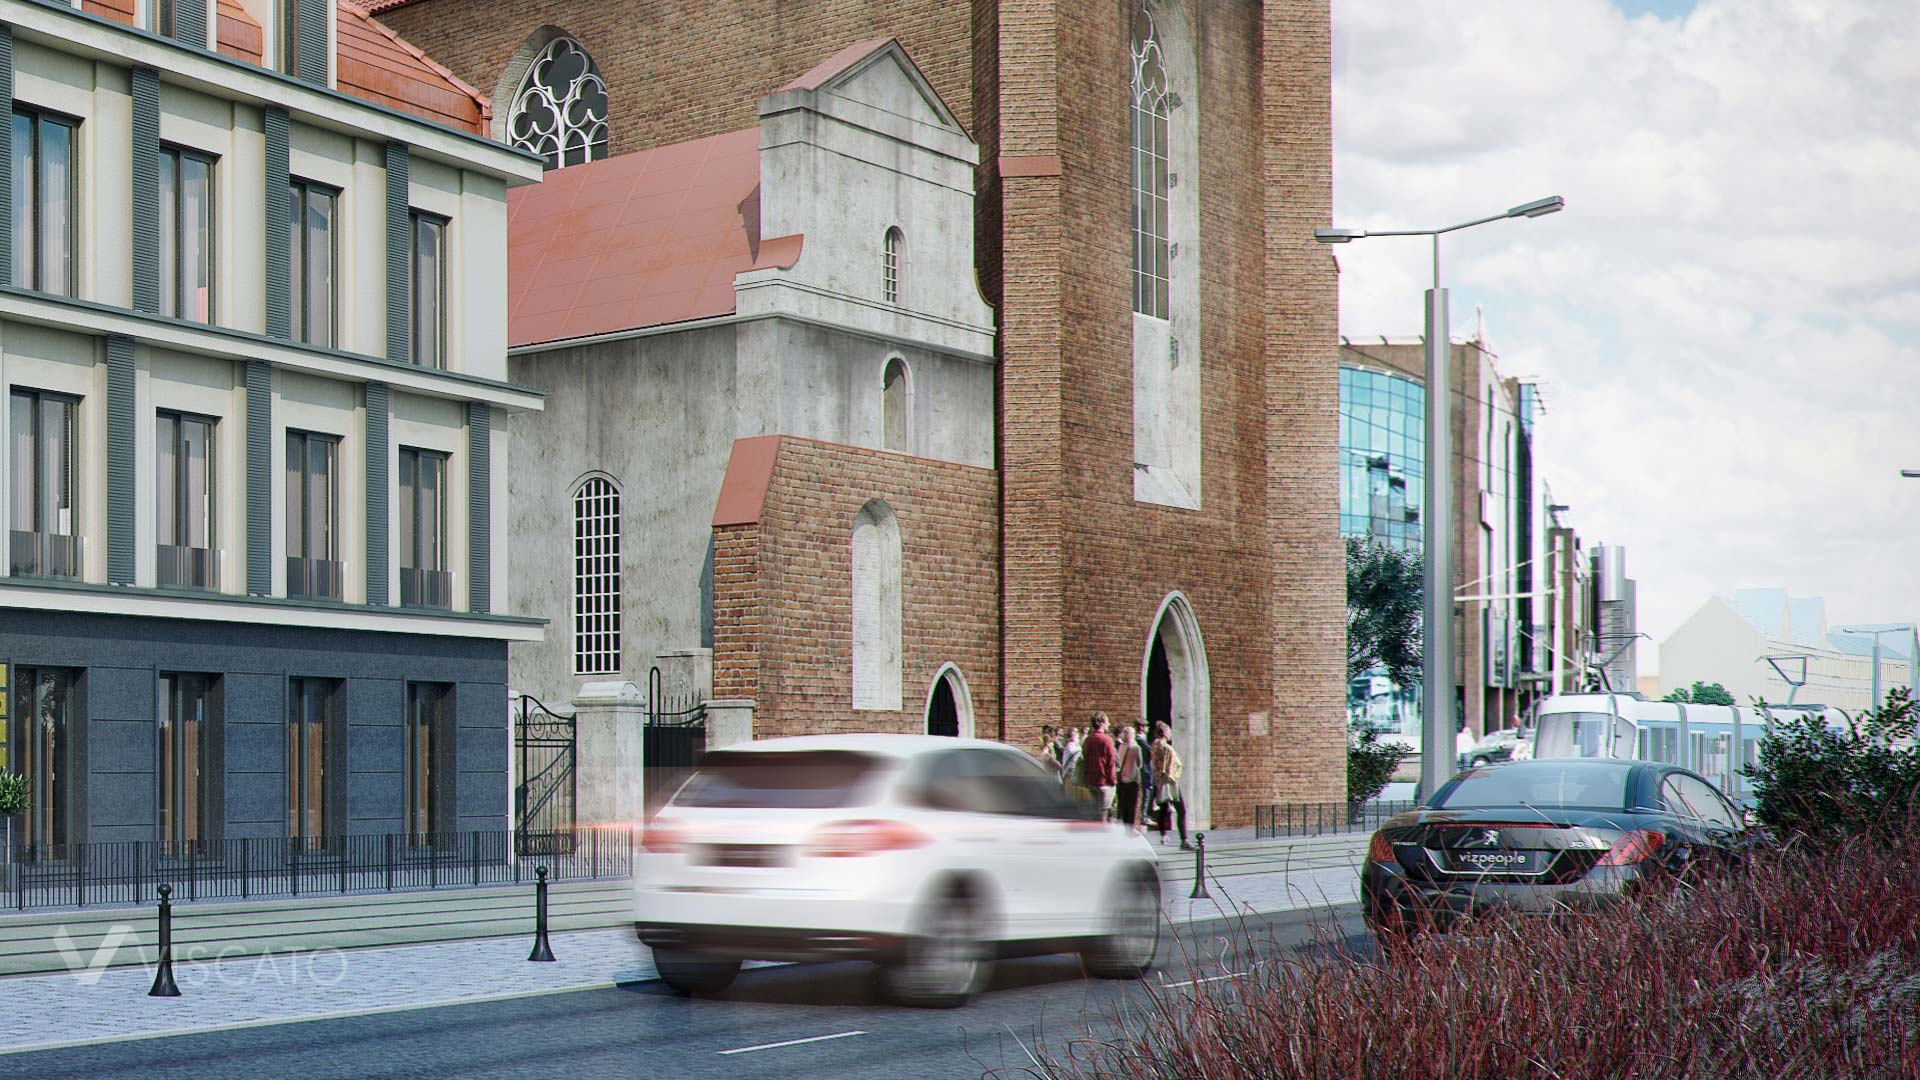 3D visualisation of a renovated old building- view from the street